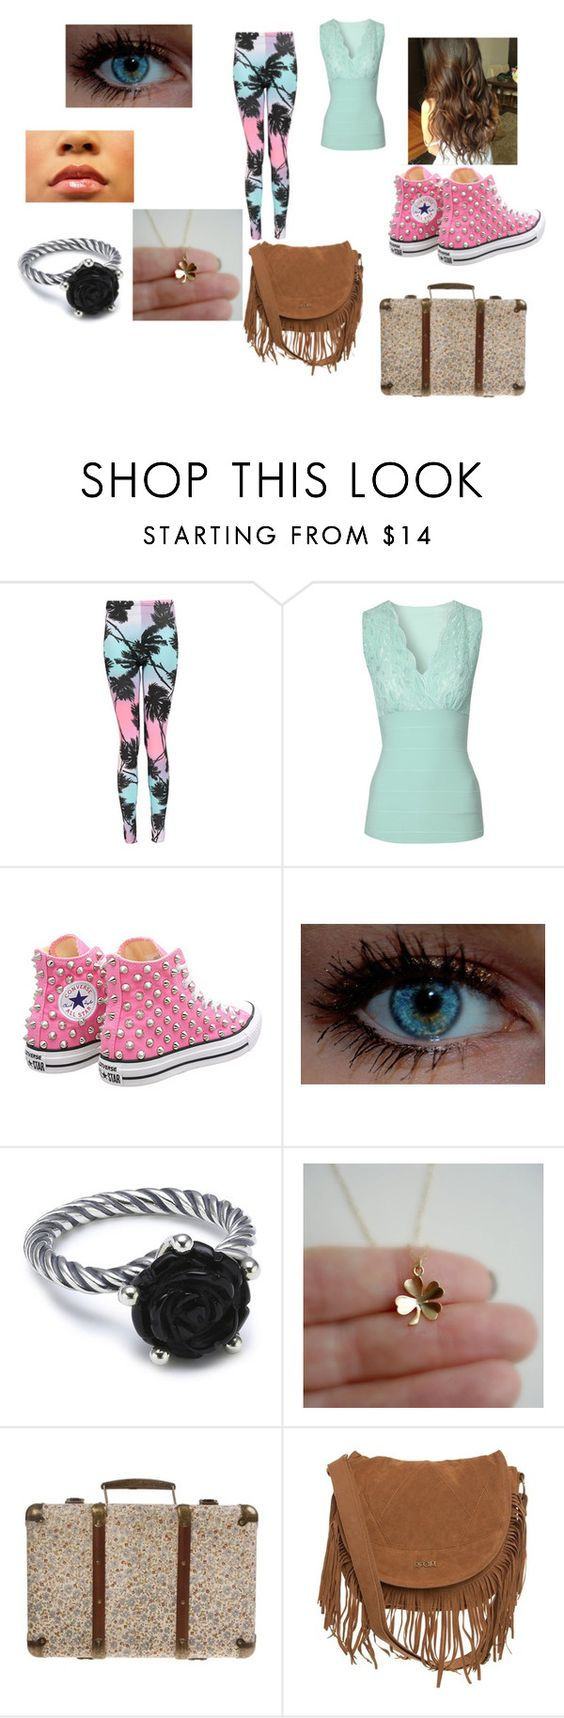 """""""Anastasia #1"""" by dancewithoutyou1999 ❤ liked on Polyvore featuring Boohoo, Jane Norman, Converse, Rip Curl, women's clothing, women, female, woman, misses and juniors"""